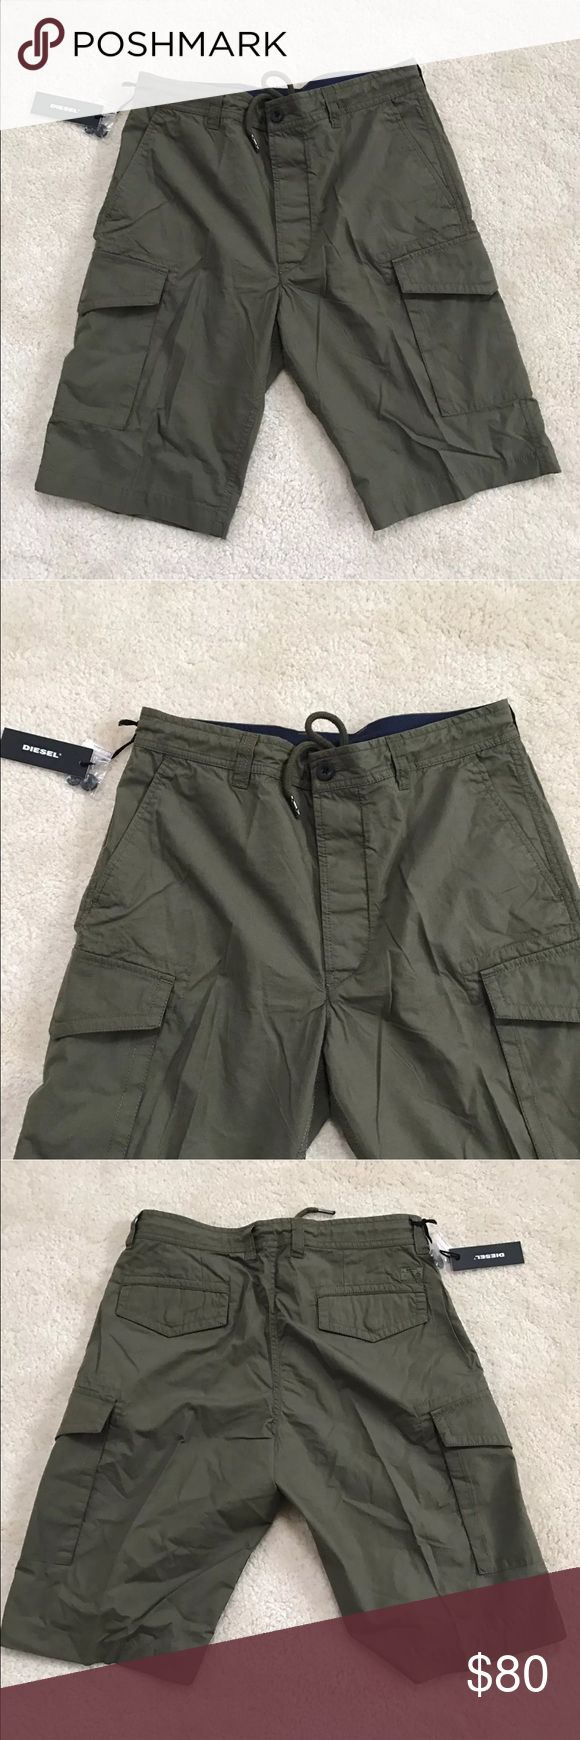 DIESEL MEN'S JEANS SHORTS MILITARY/GREEN SIZE 29 DIESEL MEN'S JEANS COOPER CASUAL SHORTS MILITARY/GREEN  SIZE 29 Style: P-COOPER SHORTS Color: Military Green  All brand new with tags and 100% authentic. Diesel Shorts Cargo